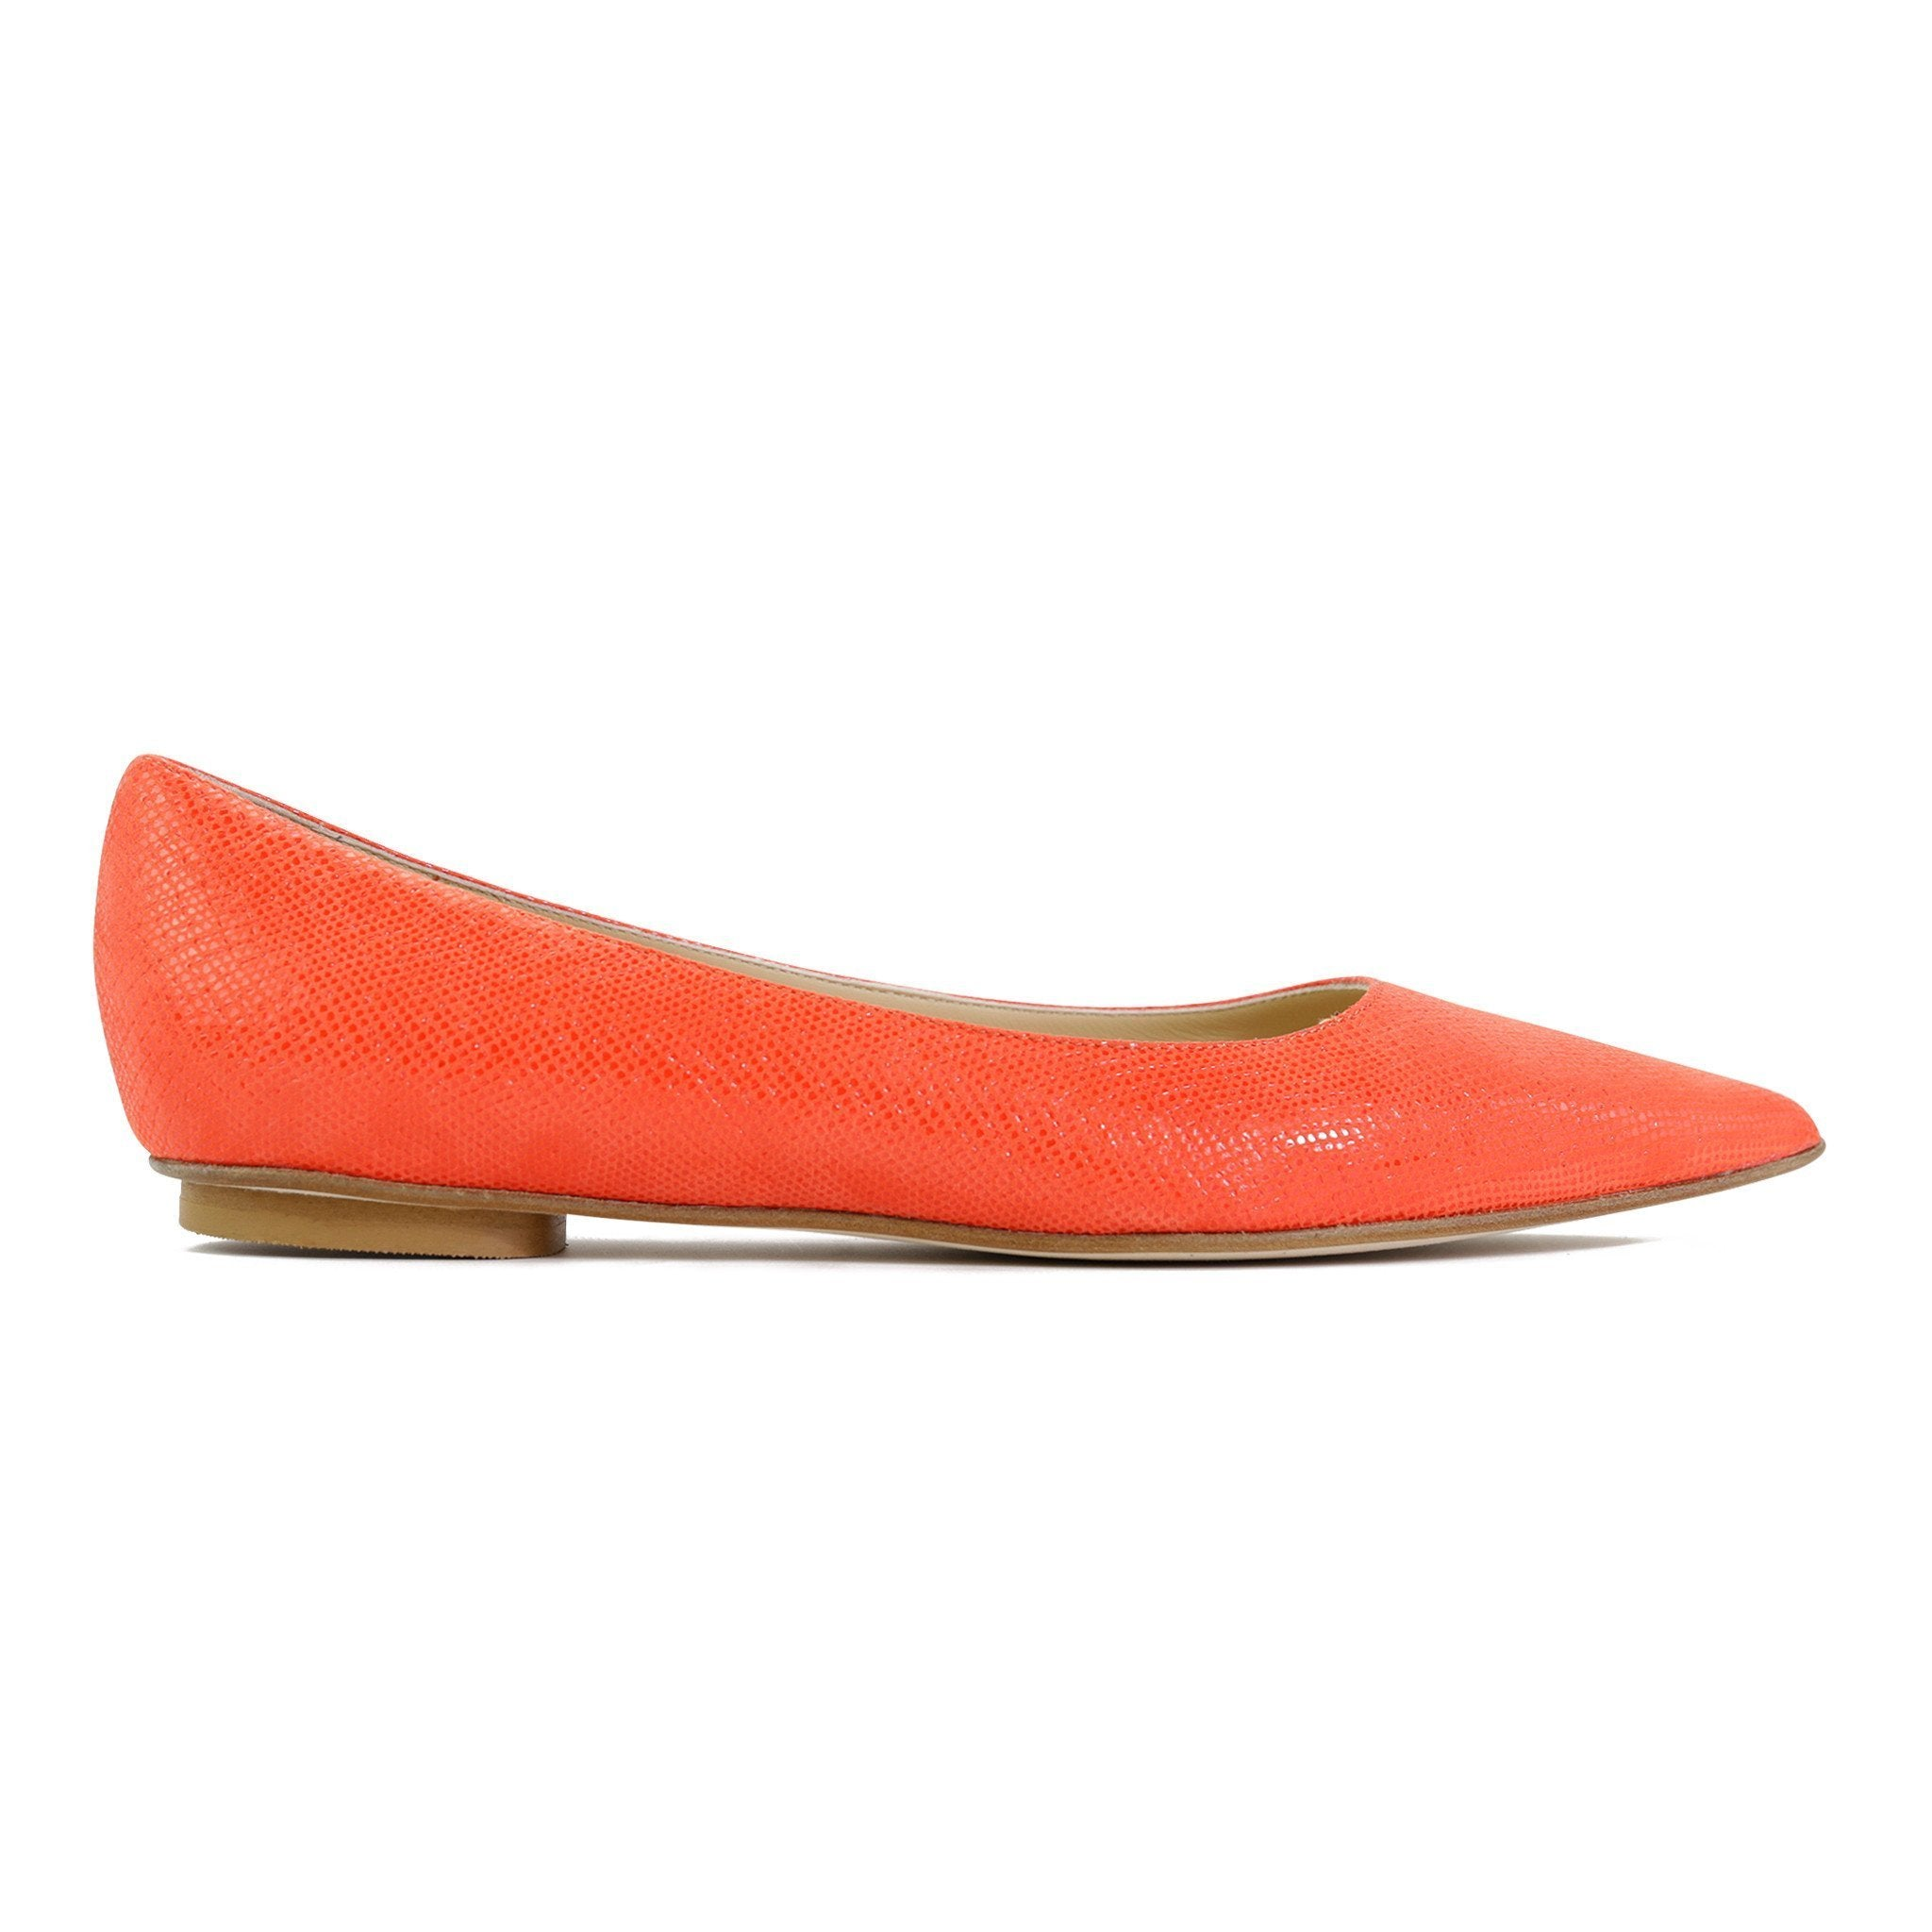 COMO - Karung Tuscan Sunset, VIAJIYU - Women's Hand Made Sustainable Luxury Shoes. Made in Italy. Made to Order.